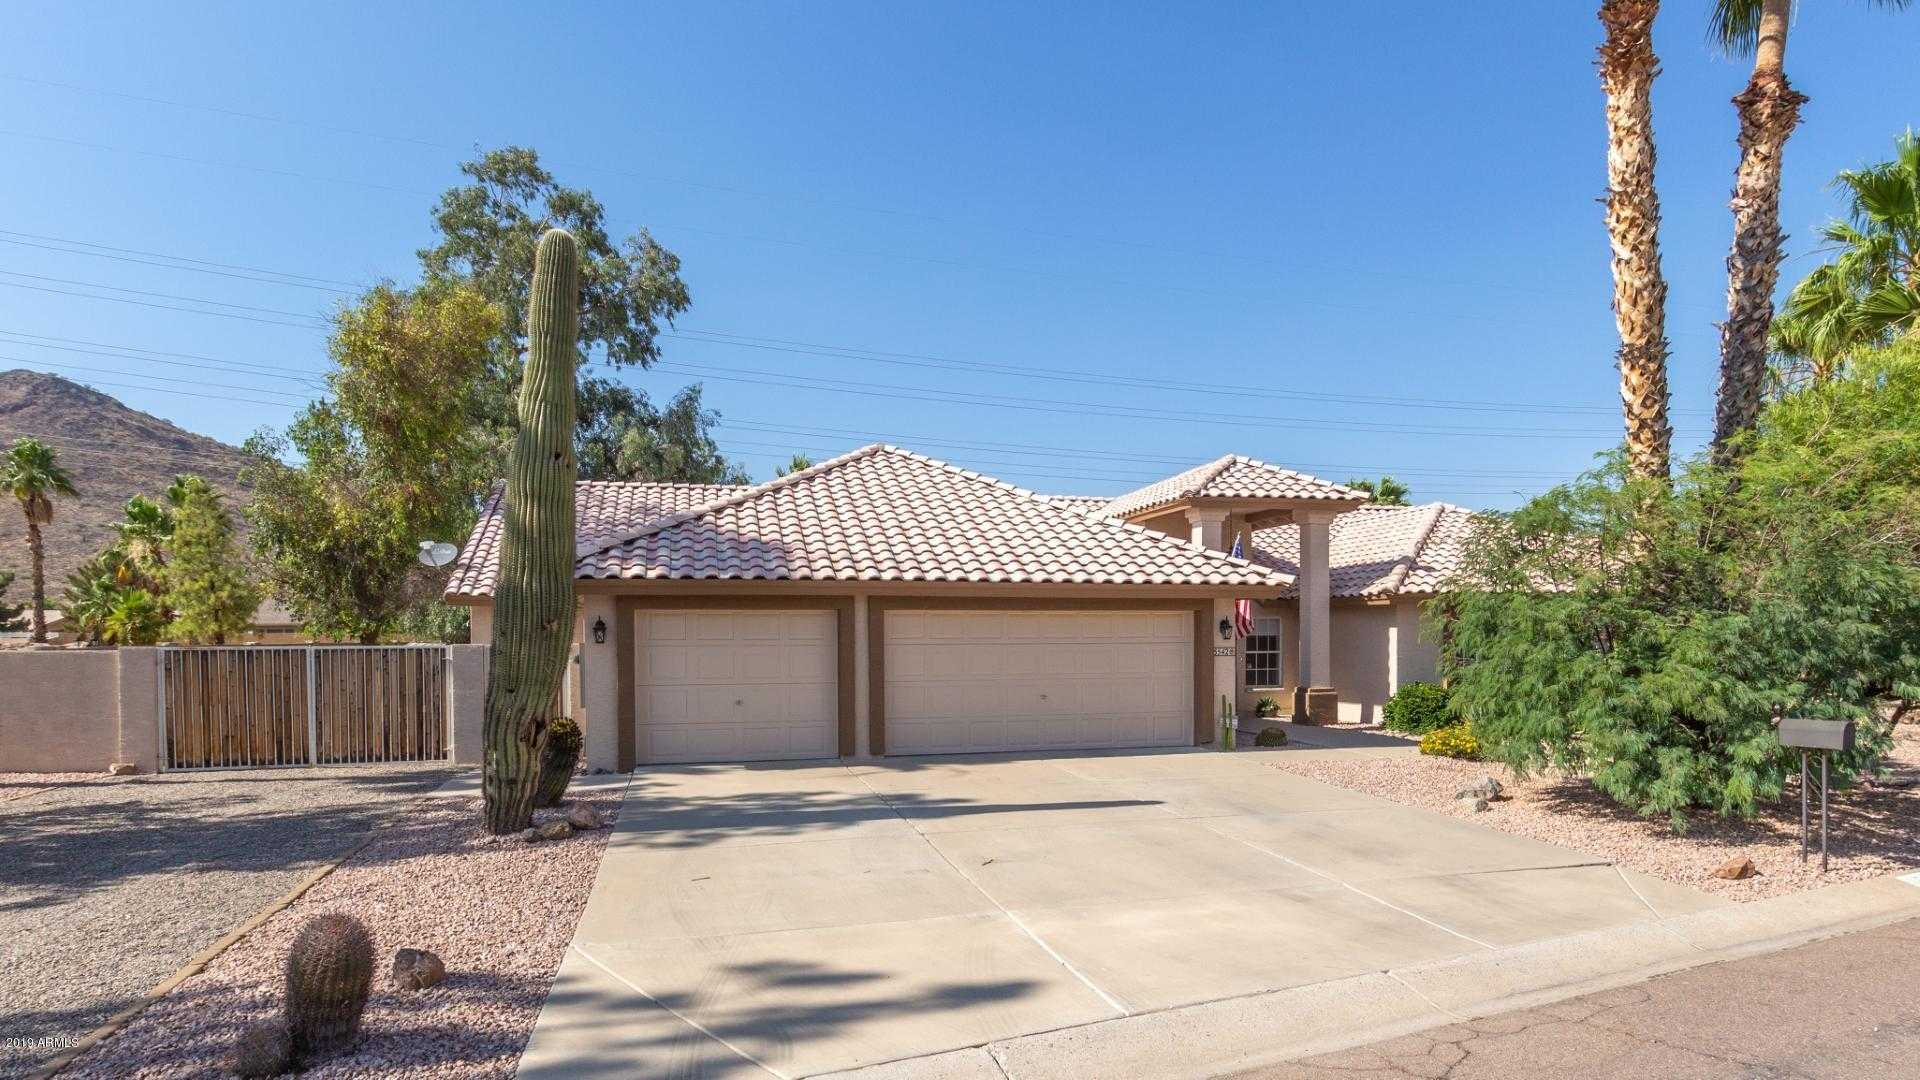 $575,000 - 4Br/3Ba - Home for Sale in Northwood Glen Lot 1-178, Glendale